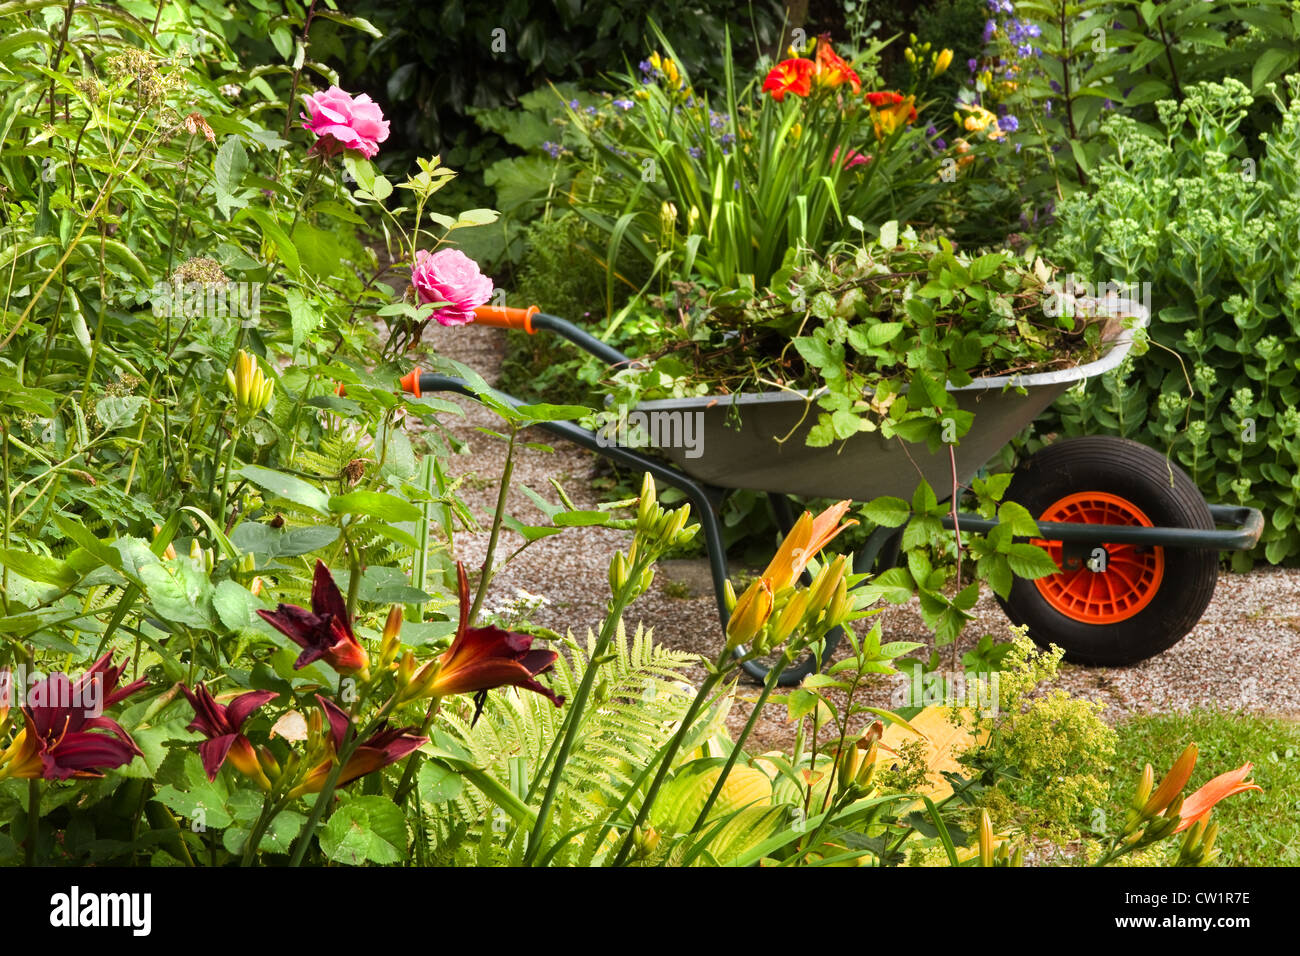 Cleaning Up Summer Garden Full Of Flowers And Wheelbarrow With Garden Waste,  Plants And Weeds   Horizontal